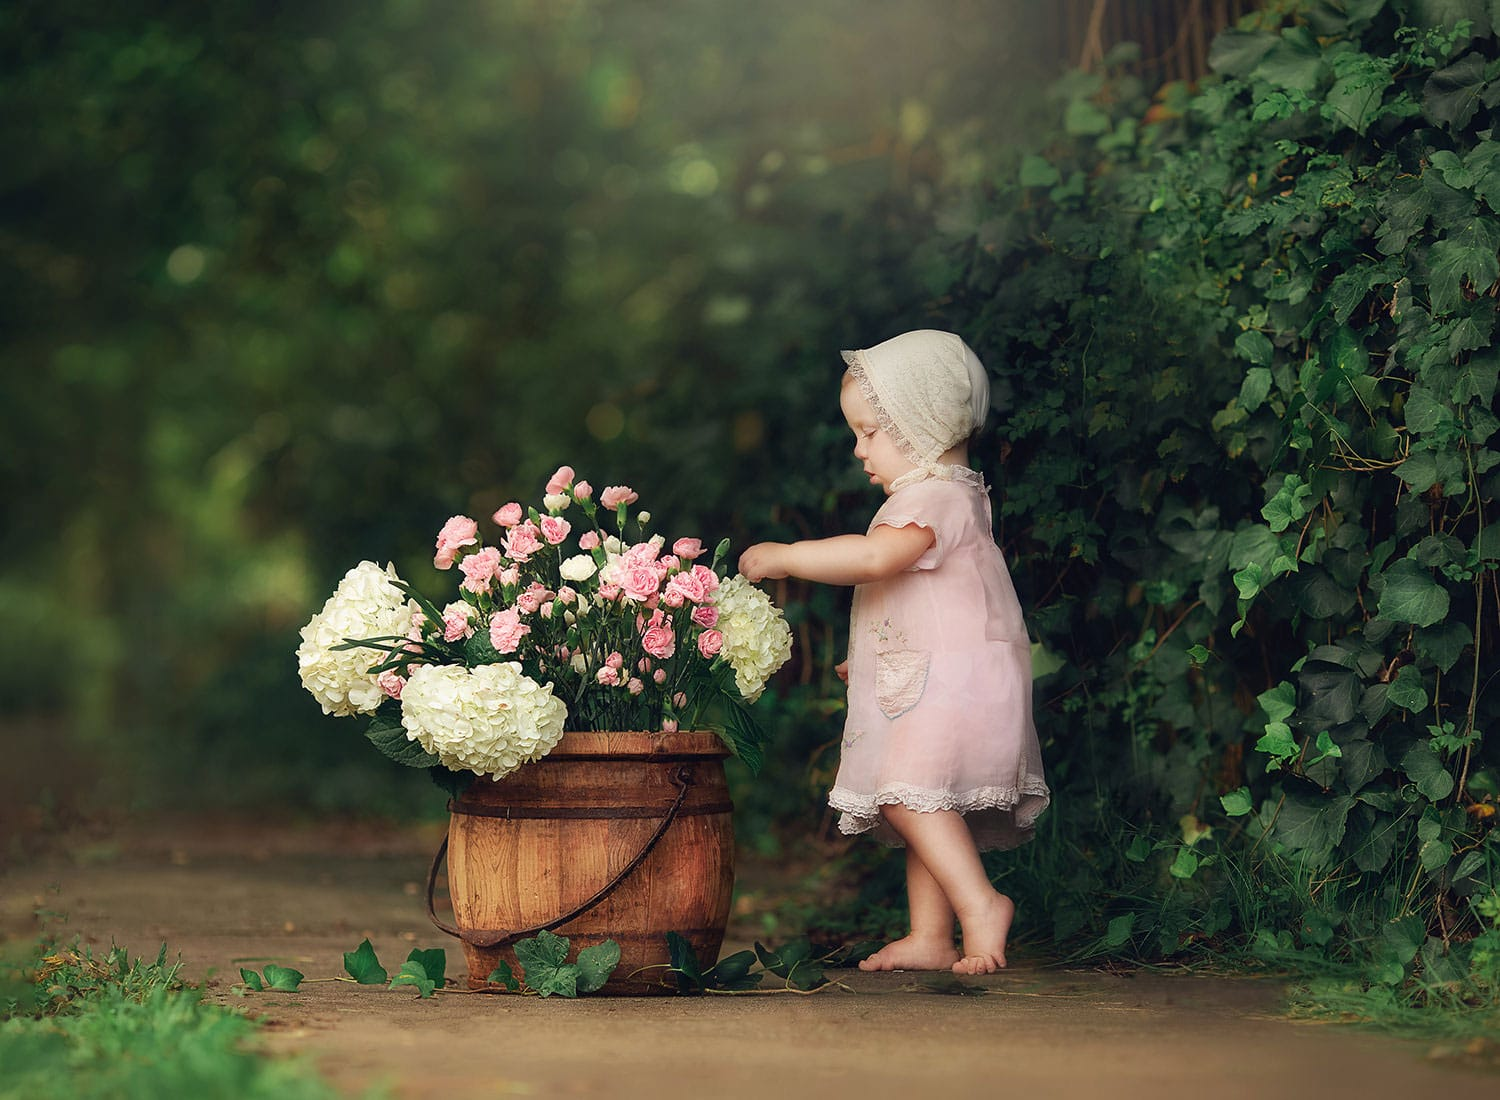 Fine art photo of baby girl with pink flowers